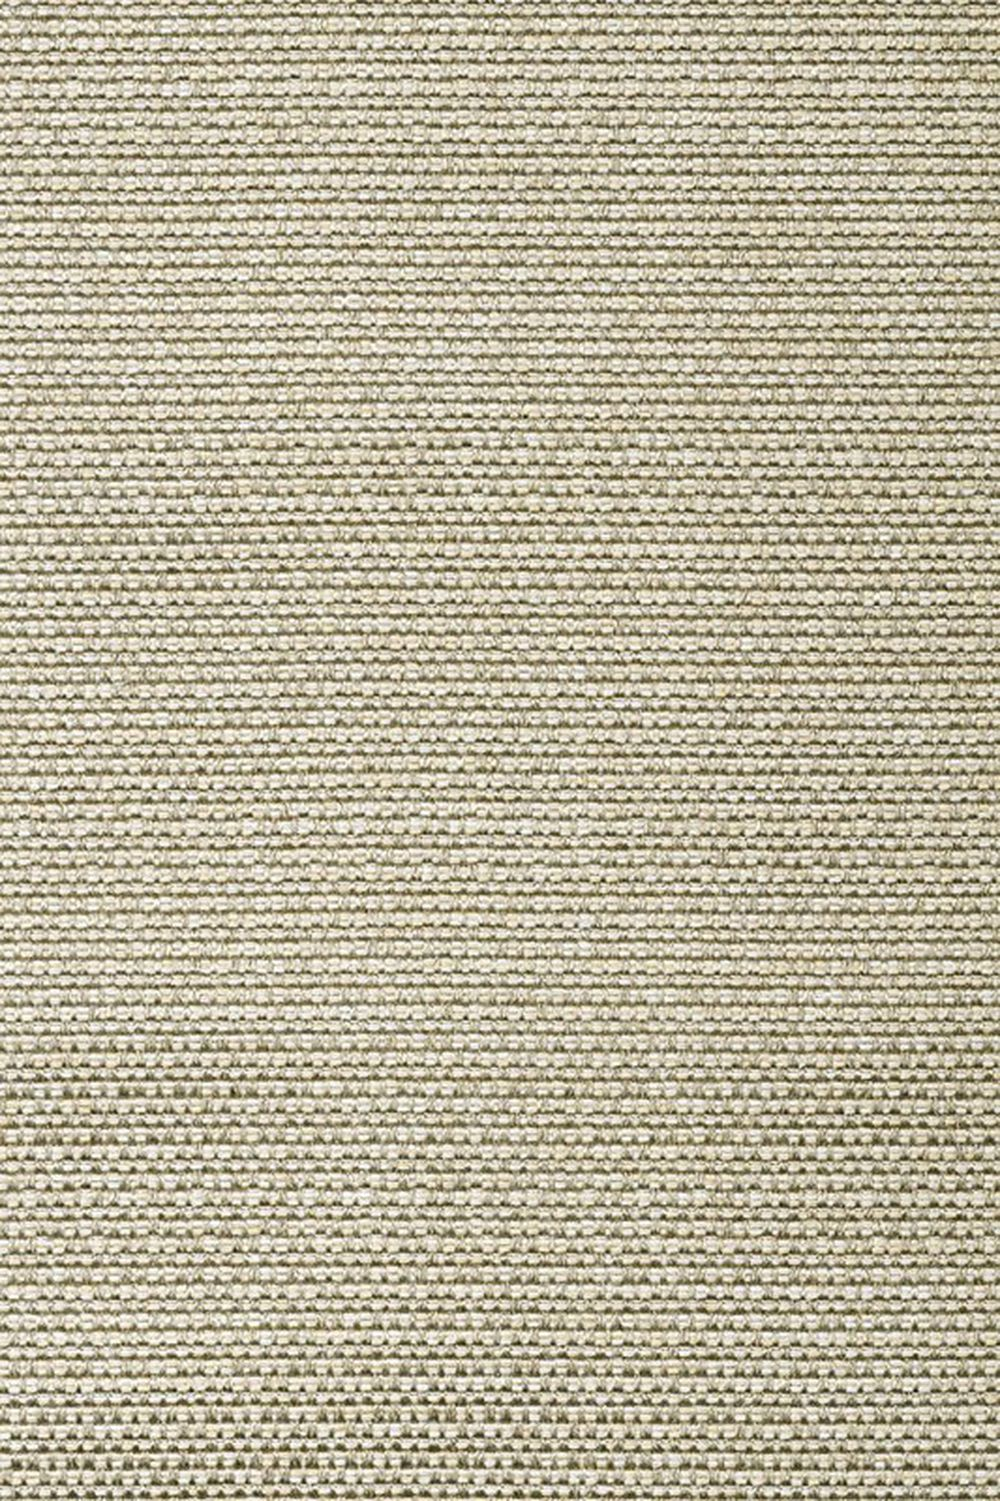 Photo of the fabric Reef Oyster swatch by Mokum. Use for Upholstery Heavy Duty, Accessory. Style of Plain, Texture